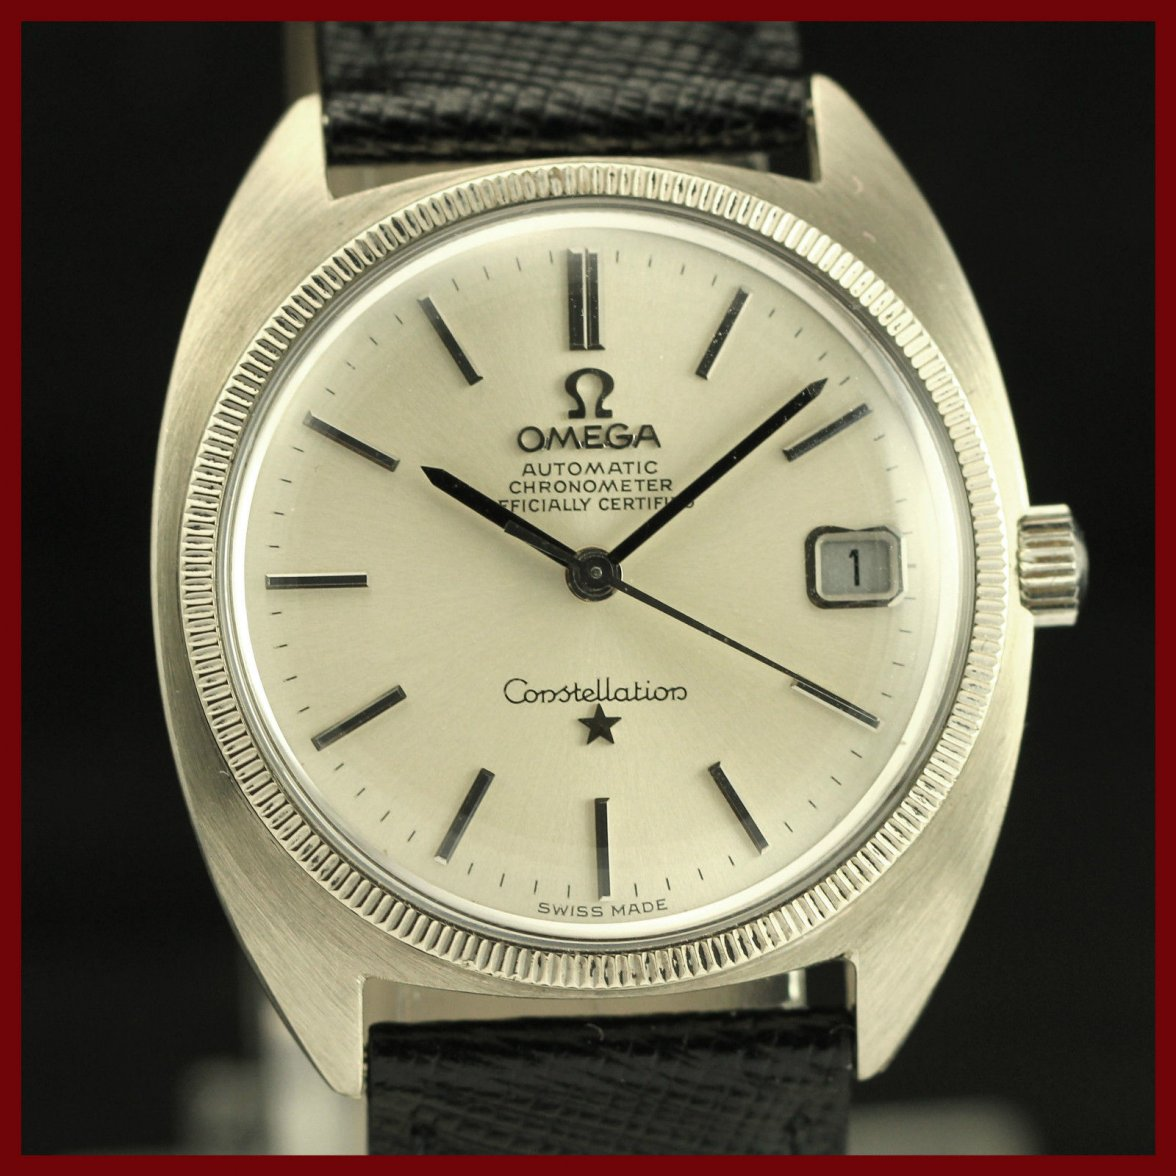 Omega Globemaster Watches With Live Photos and Pricing ...